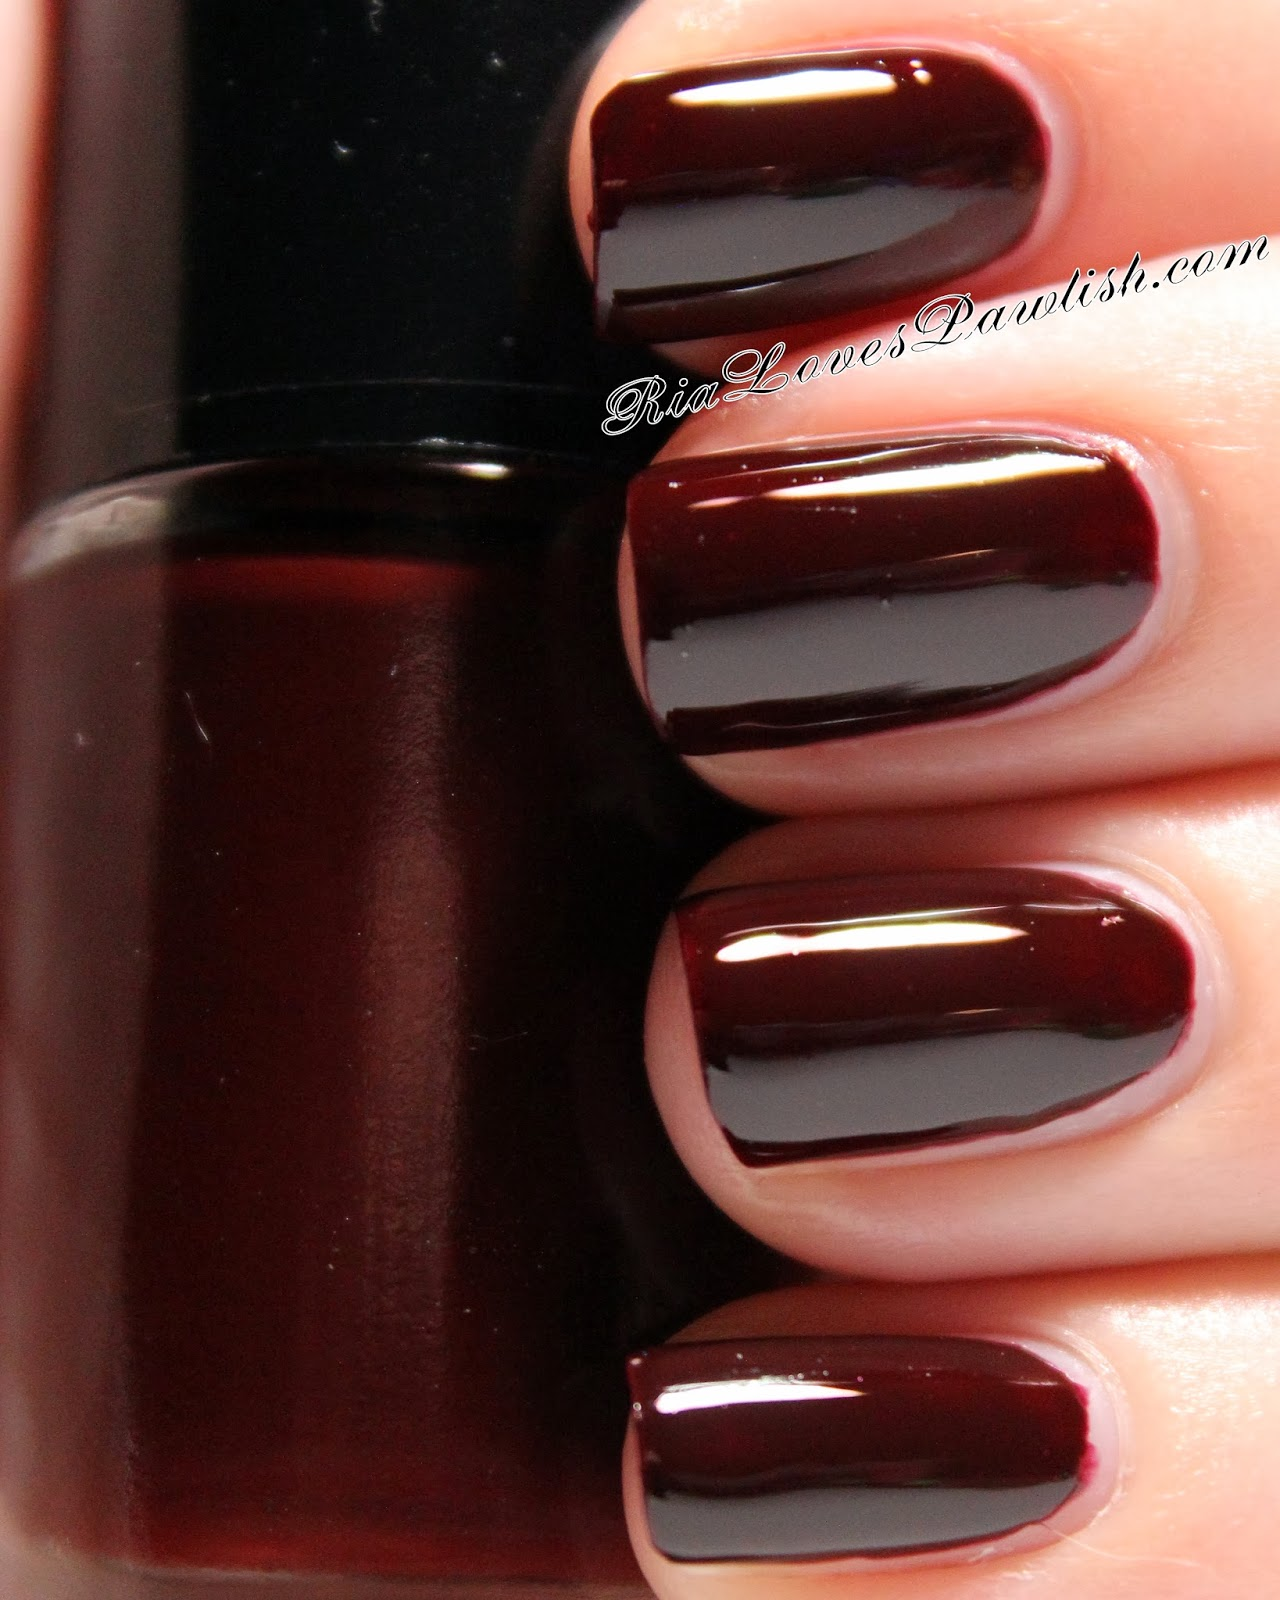 What\'s your favorite nail polish color, and why? : AskWomen